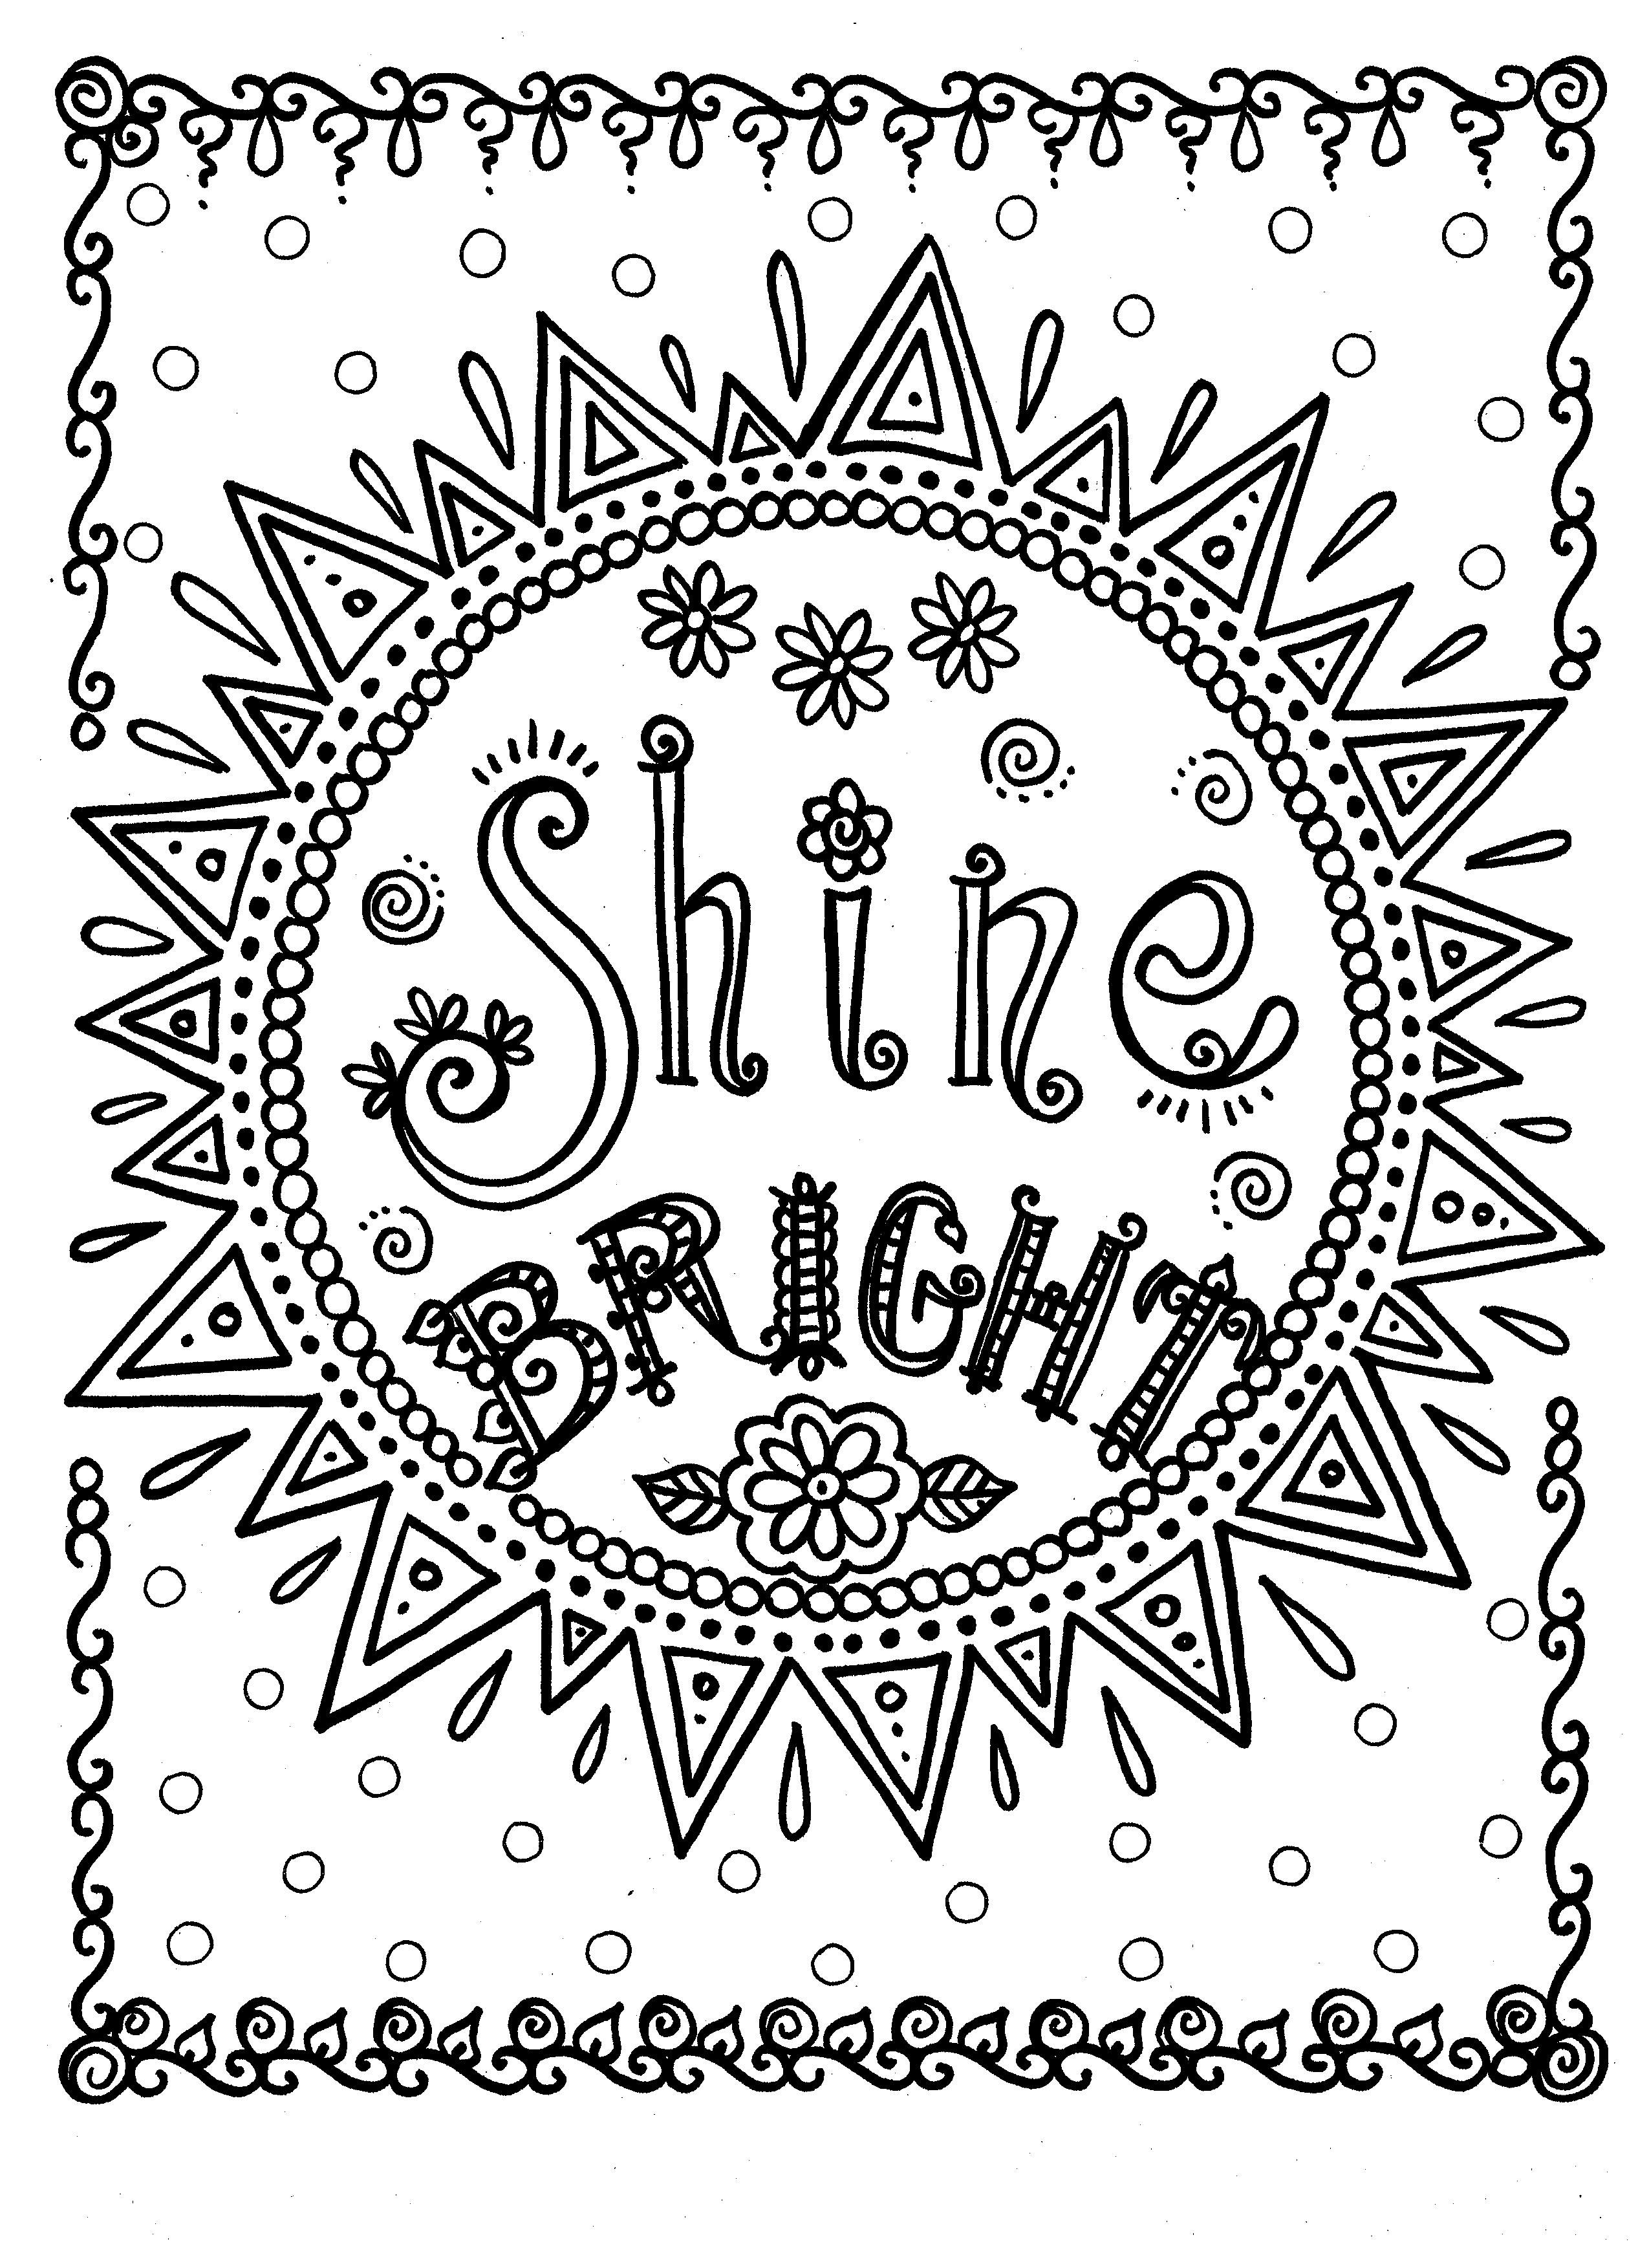 Shine Bright by Deborah Muller ChubbyMermaid | Words ... | free printable coloring pages for adults inspirational quotes